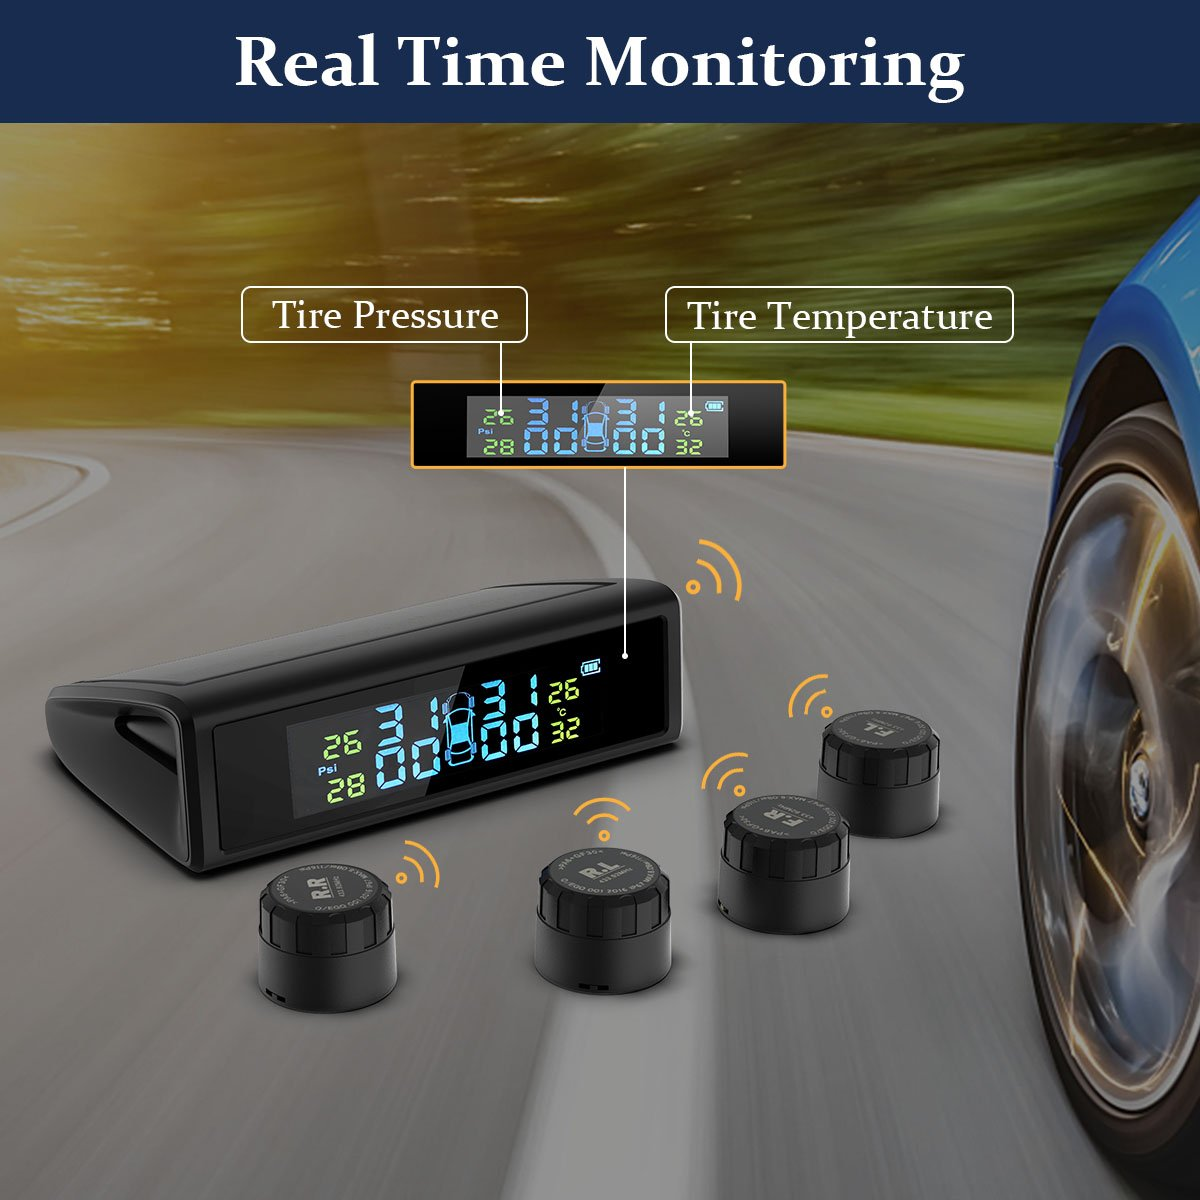 HiGoing Tire Pressure Monitoring System, Solar Wireless TPMS Built-in 450mAh Battery, 4 External Sensors (0-8.0 Bar/0-116 Psi, 49-85℉/65-85℃), 6 Alarms Real-time High Monitor Temperature & Pressure by HiGoing (Image #7)